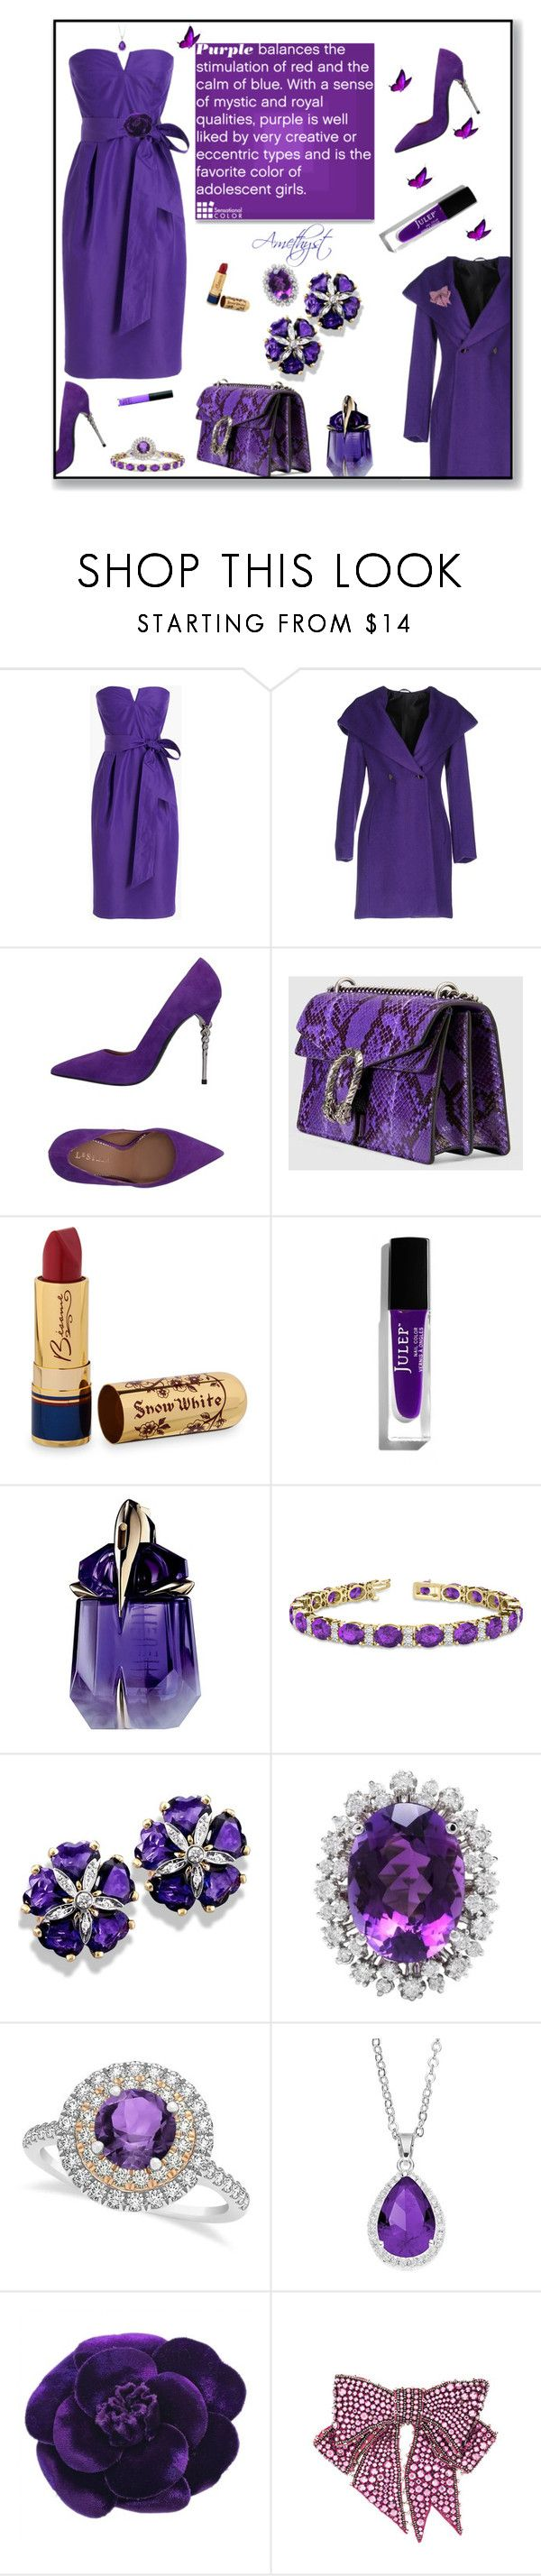 """""""Amethyst"""" by deborah-518 ❤ liked on Polyvore featuring J.Crew, Carla G., Le Silla, Gucci, Bésame, Thierry Mugler, Allurez, City Rox, Chanel and NARS Cosmetics"""